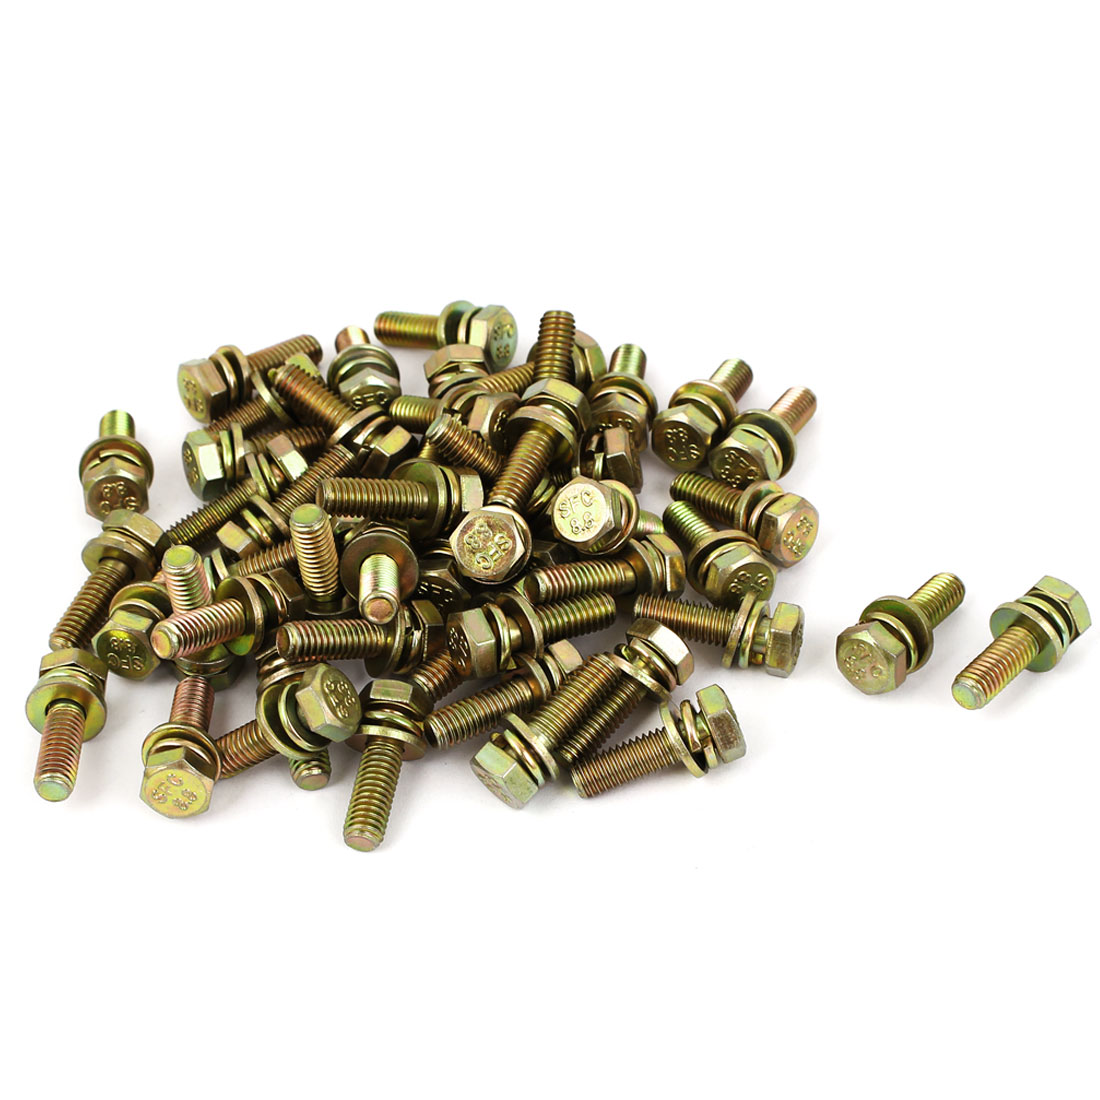 50pcs M6x20mm 8.8 Grade Yellow Zinc Plated Hex Head Bolt w Washer